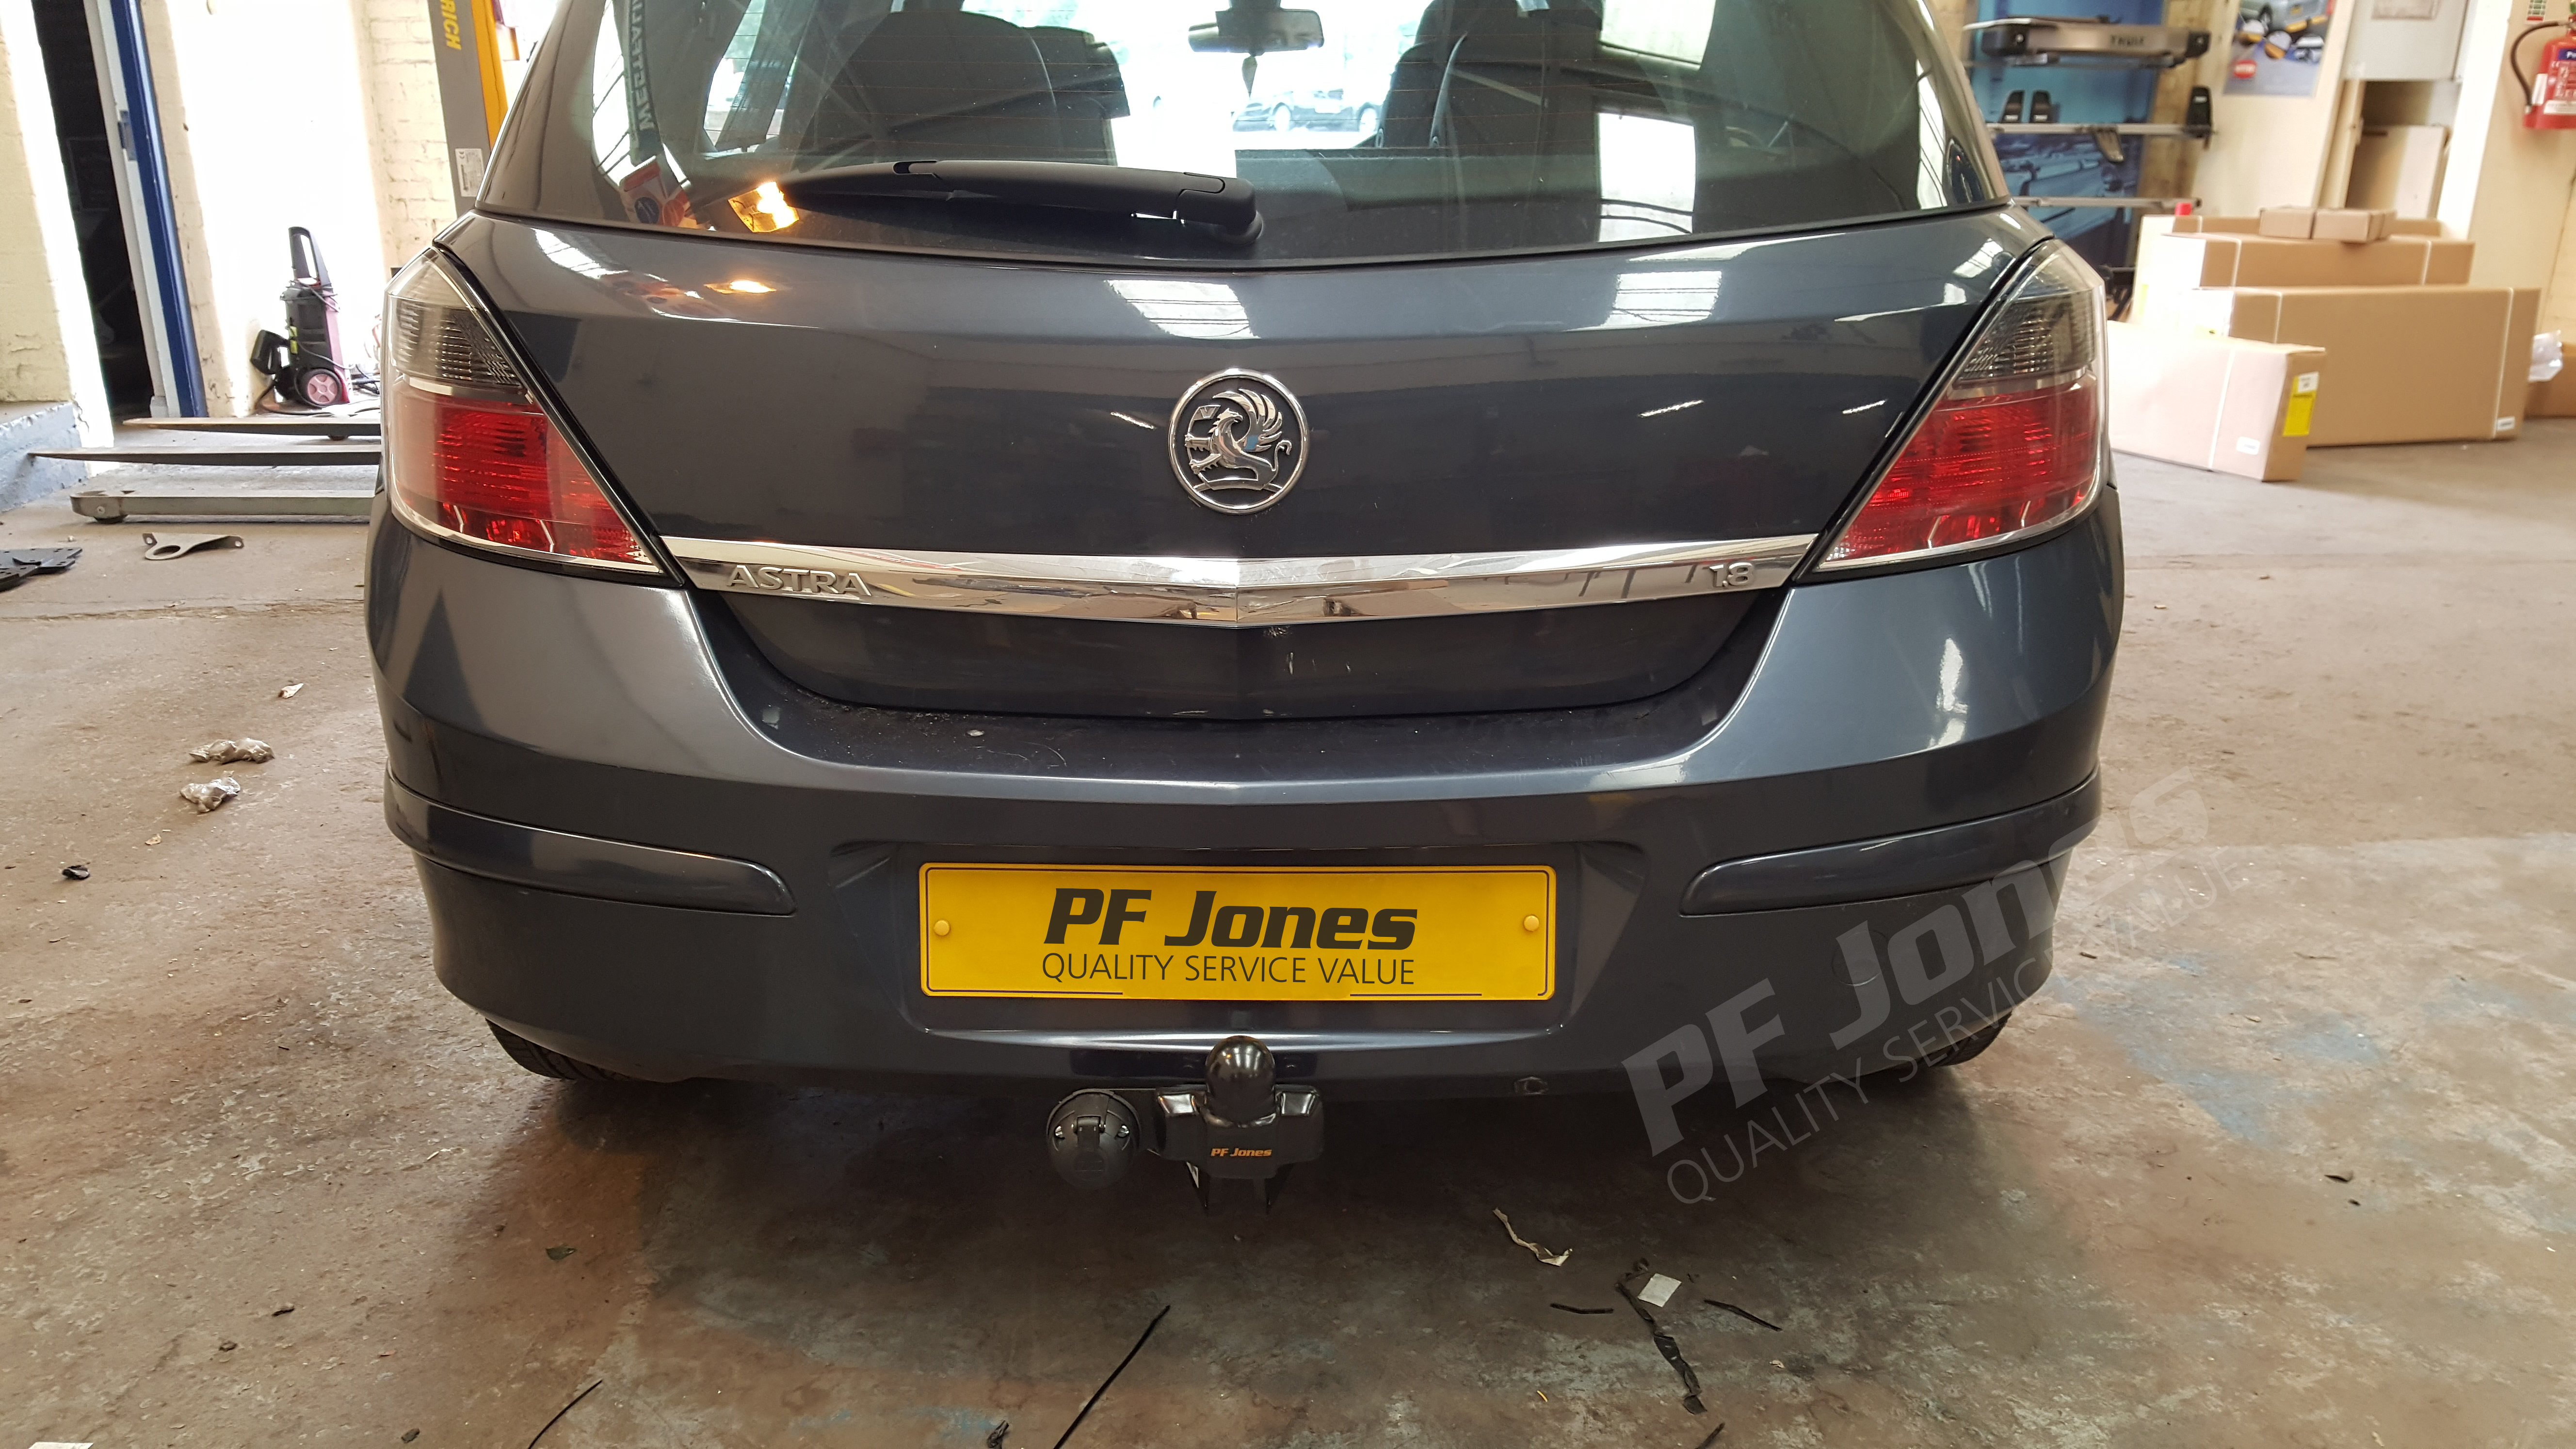 Vauxhall Astra Towbar Wiring Kits PF Jones Witter Tow dinocroinfo